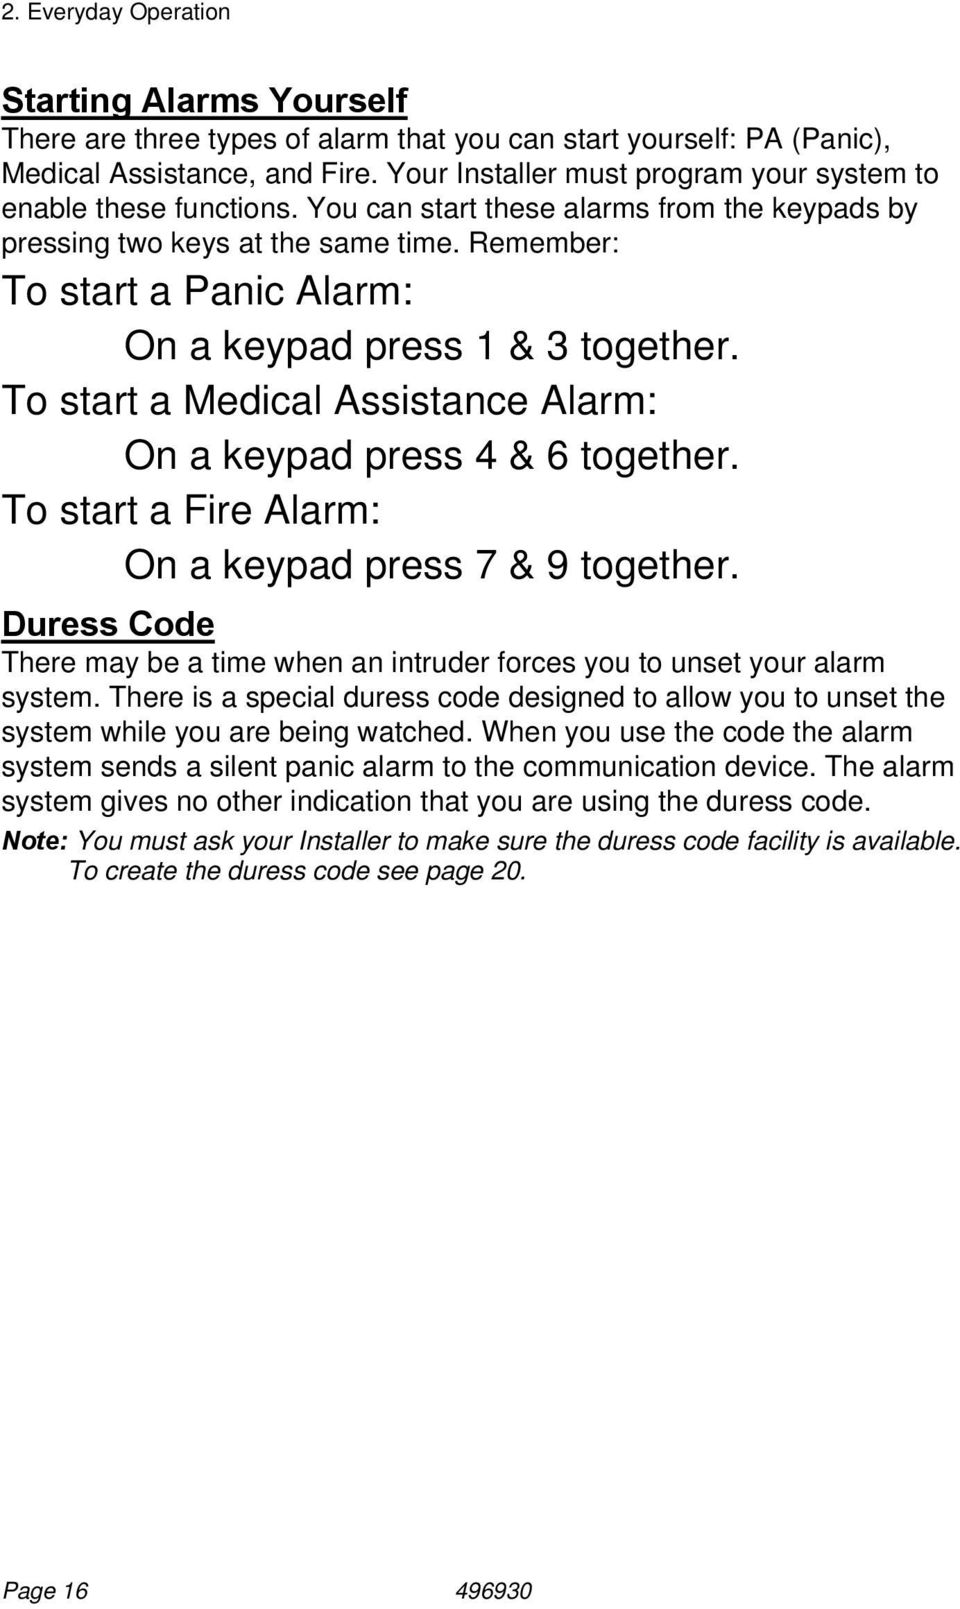 Remember: To start a Panic Alarm: On a keypad press 1 & 3 together. To start a Medical Assistance Alarm: On a keypad press 4 & 6 together. To start a Fire Alarm: On a keypad press 7 & 9 together.